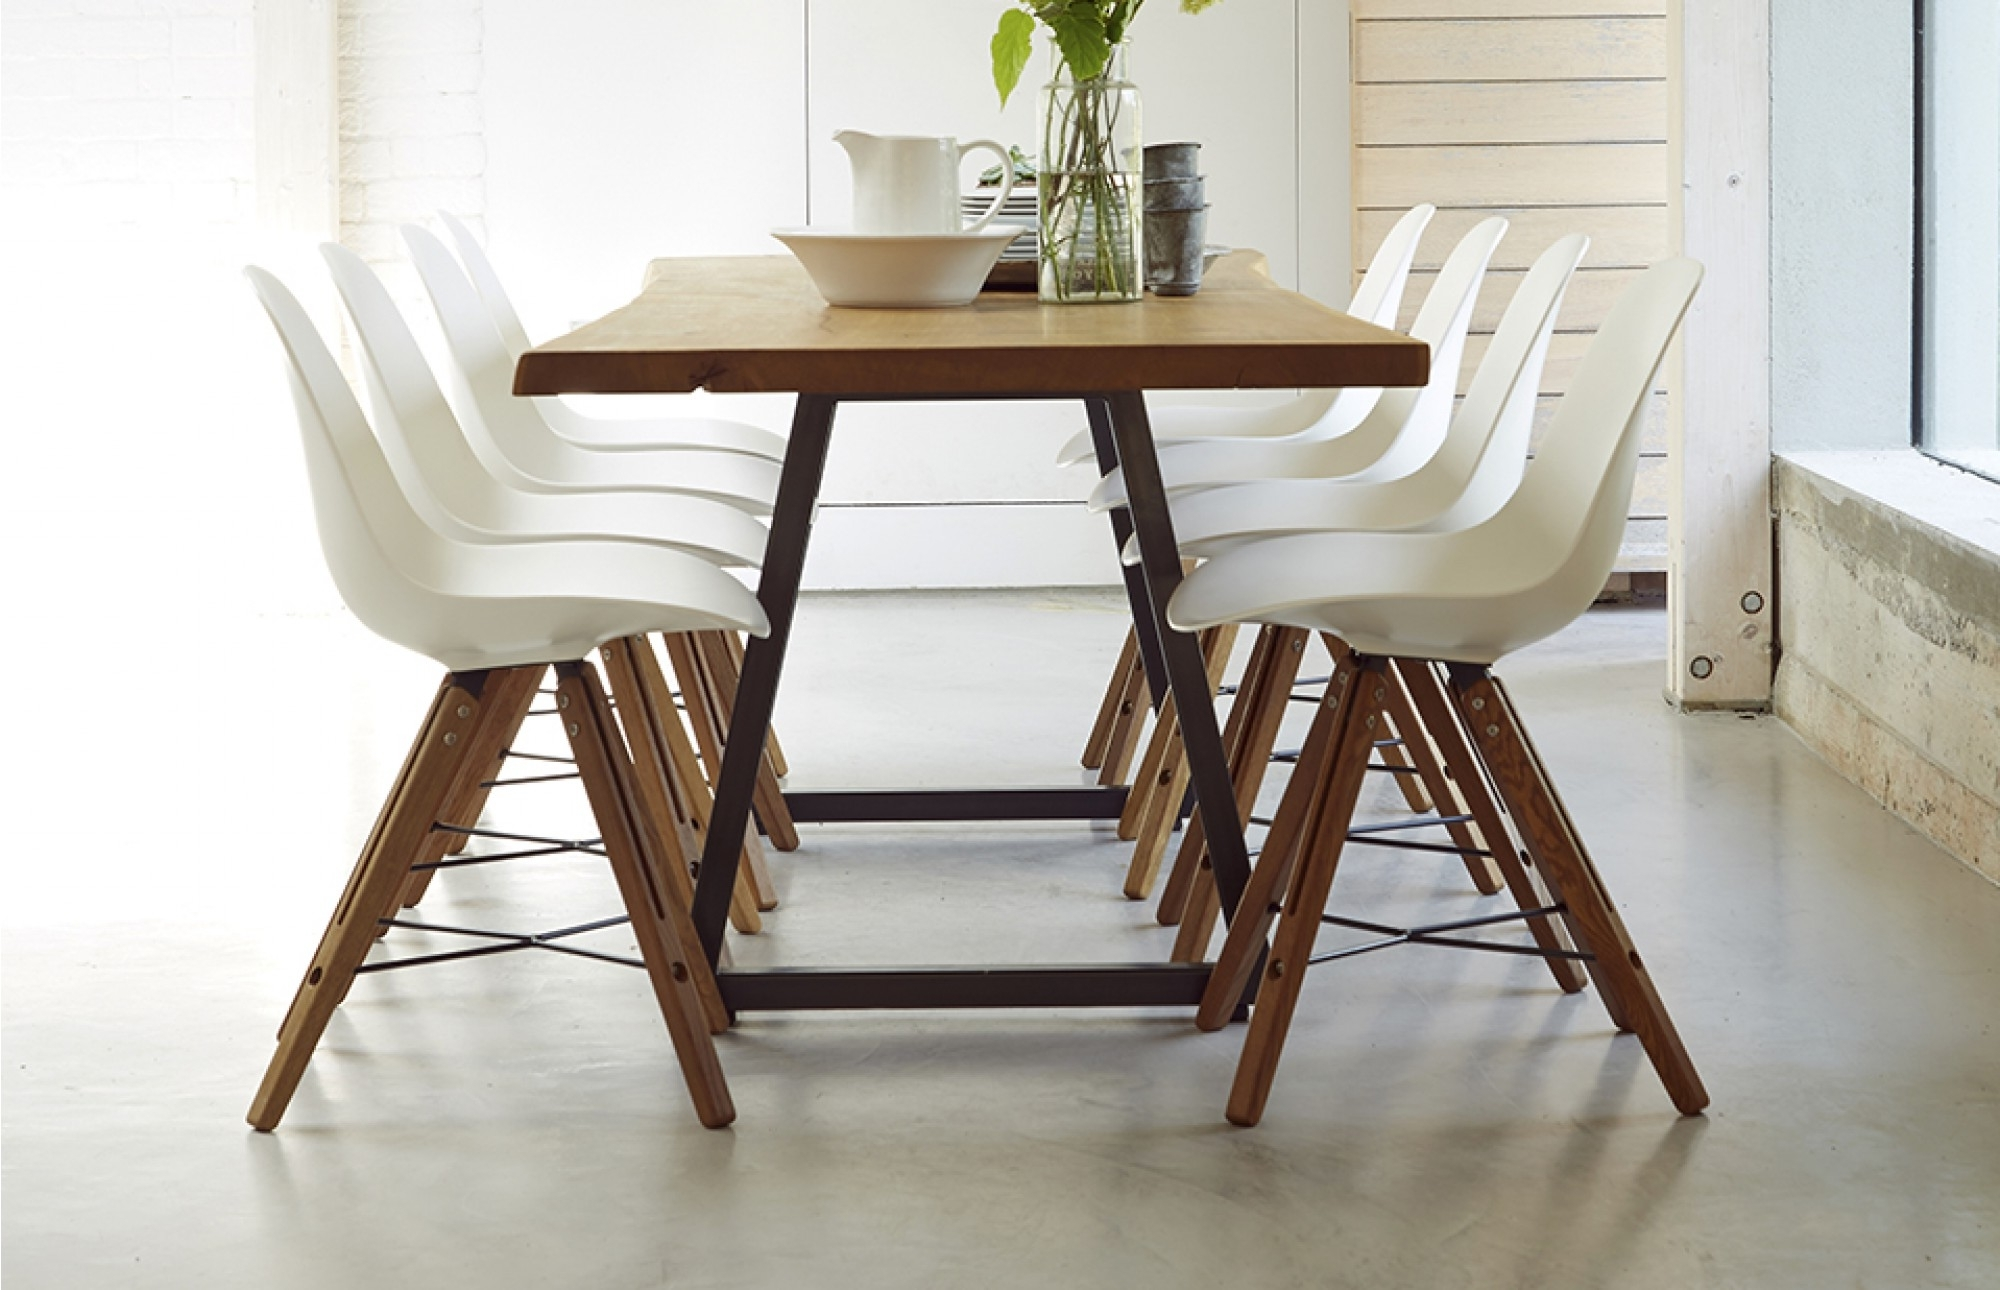 Swani Furniture In Popular Cheap 8 Seater Dining Tables (View 4 of 25)